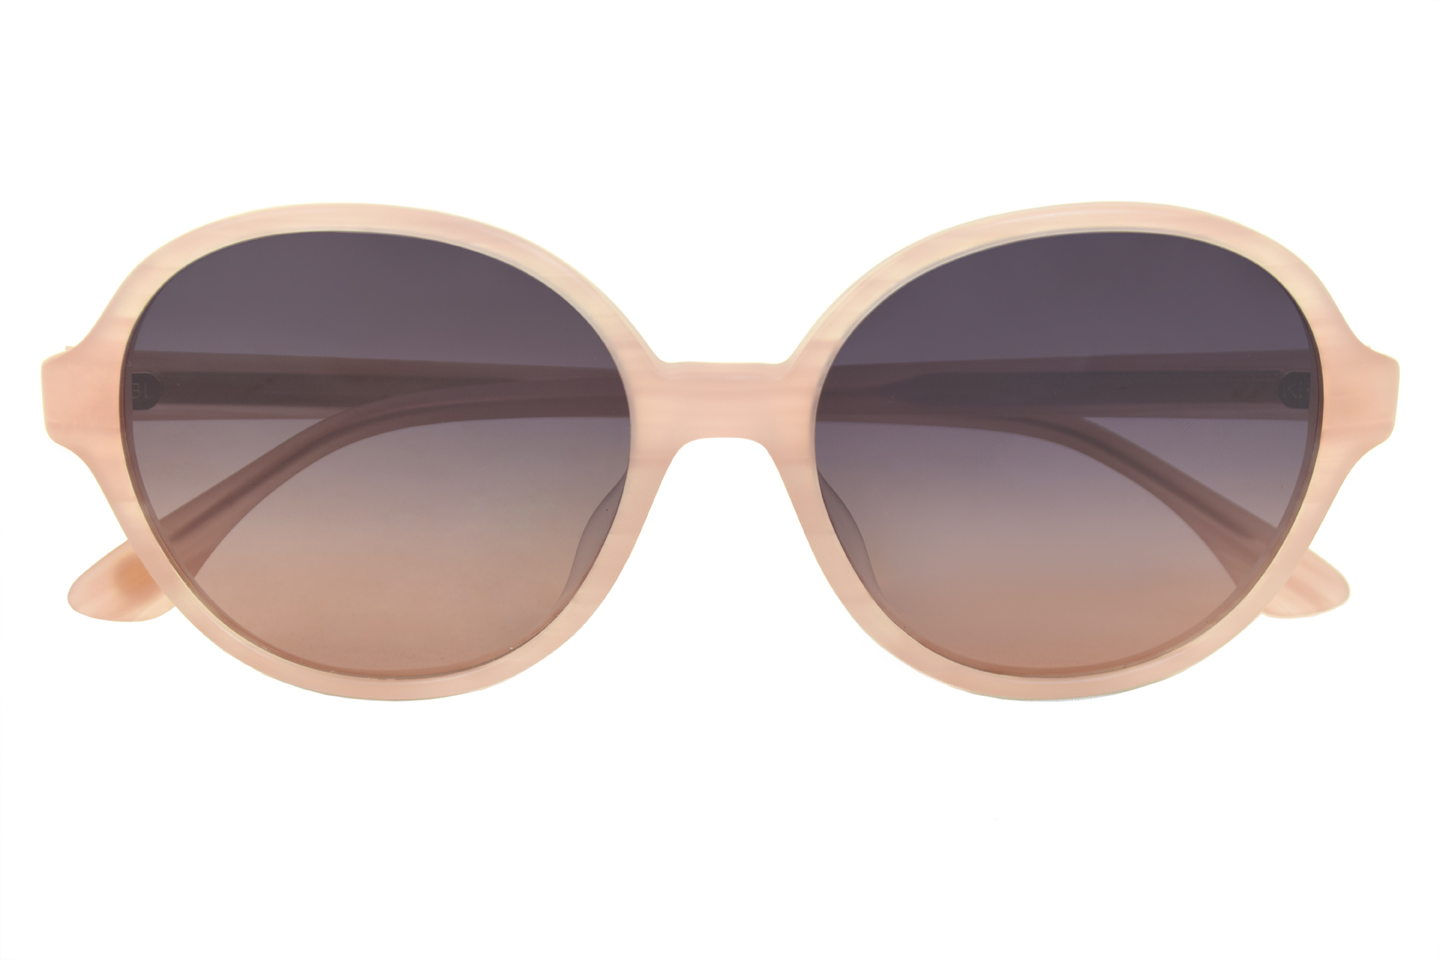 Round light pink sunglasses from KBL eyewear model Endless Summer 1.395 d.kr.